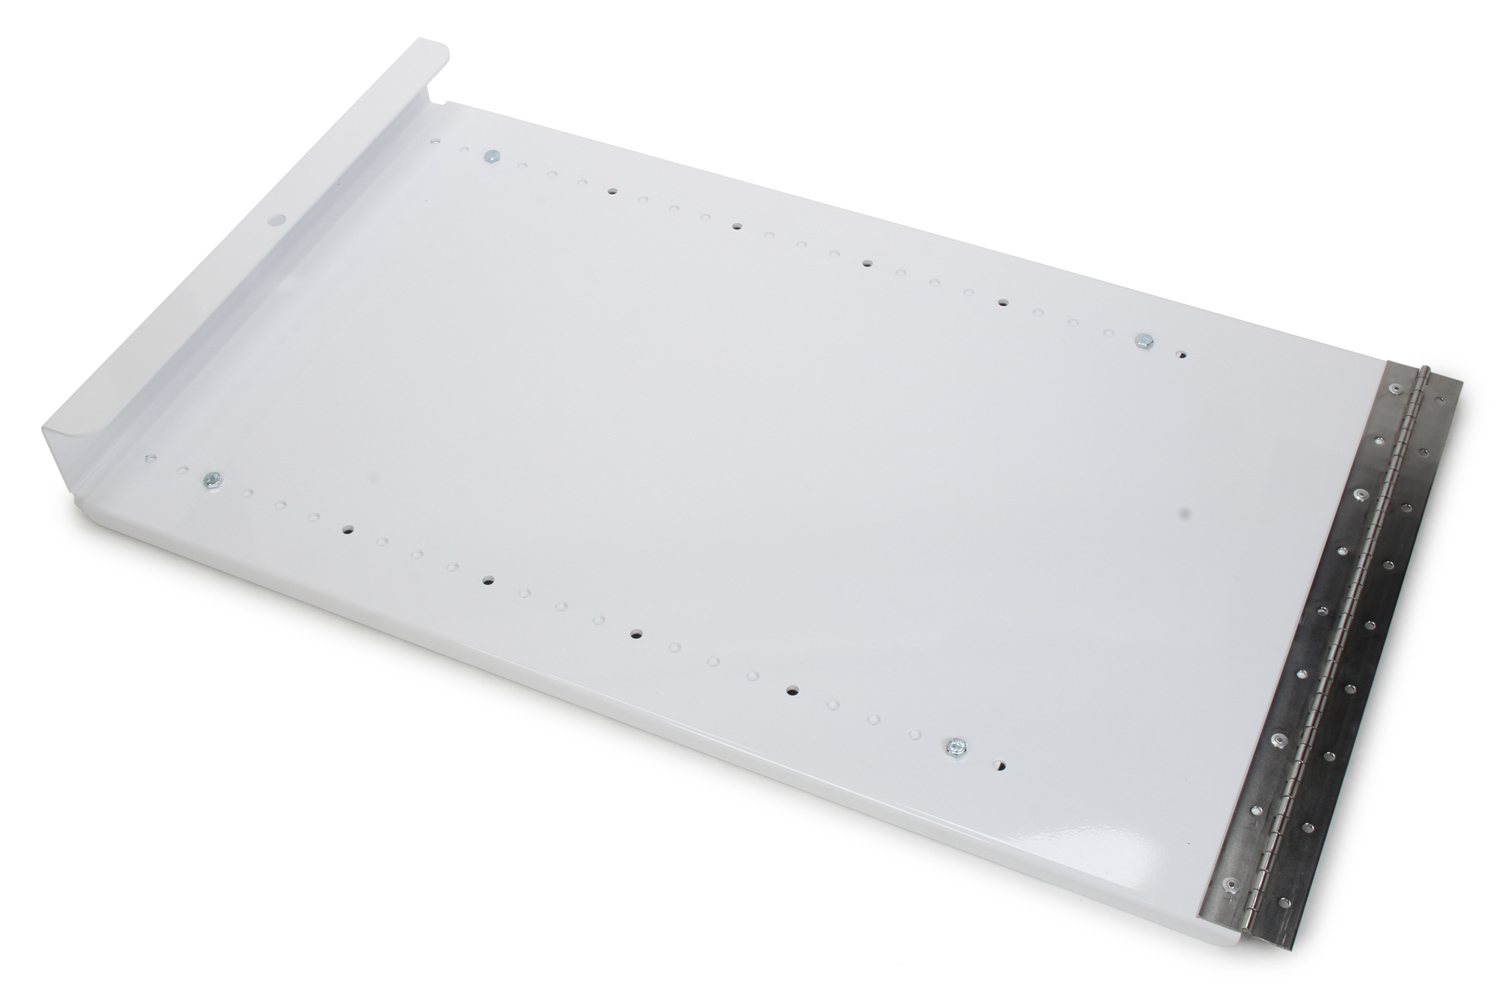 Hepfner Racing Products HRP6551-WHT Wing Holder, Roof Mount, Top Wing, Aluminum, White Powder Coat, Kit